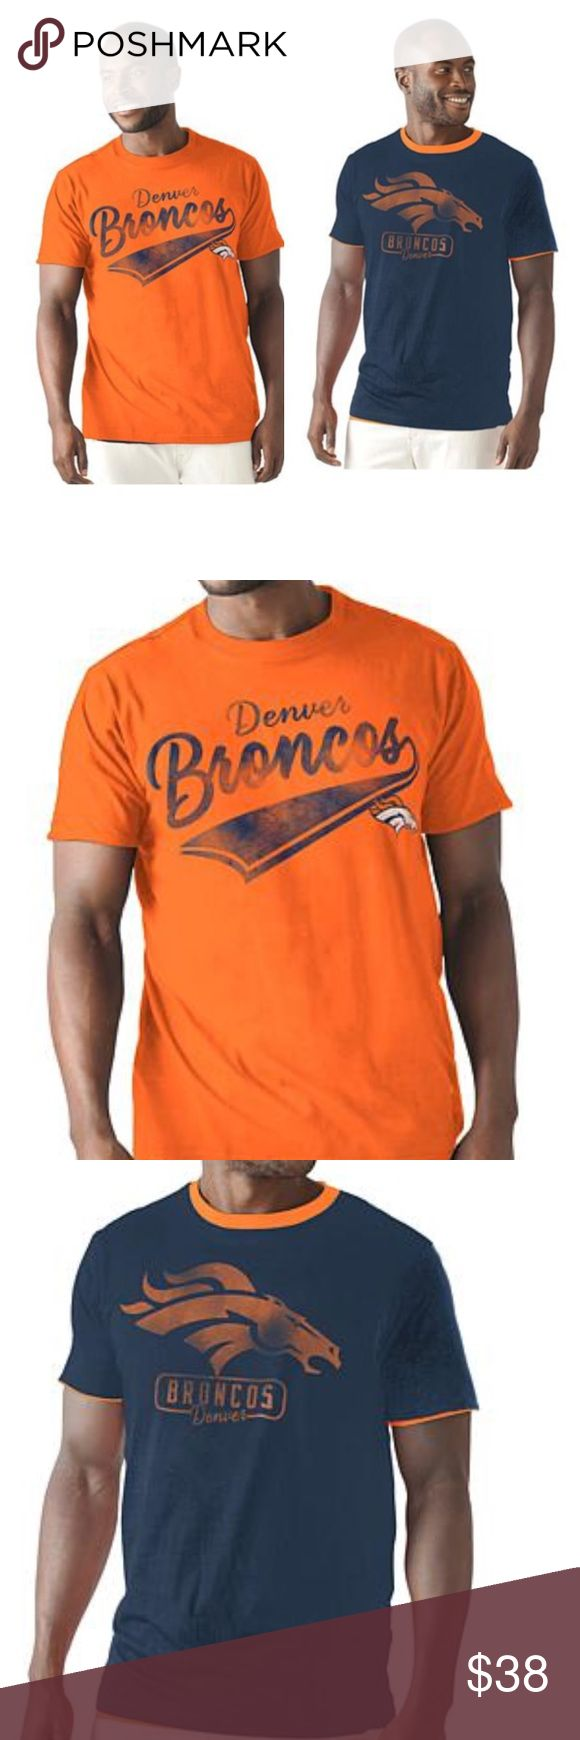 Denver Broncos reversible t shirt NIB MENS size M GIII NFL Reversible Back Up t shirt. Upon request I will take out of bag for pics. NFL Shirts Tees - Short Sleeve